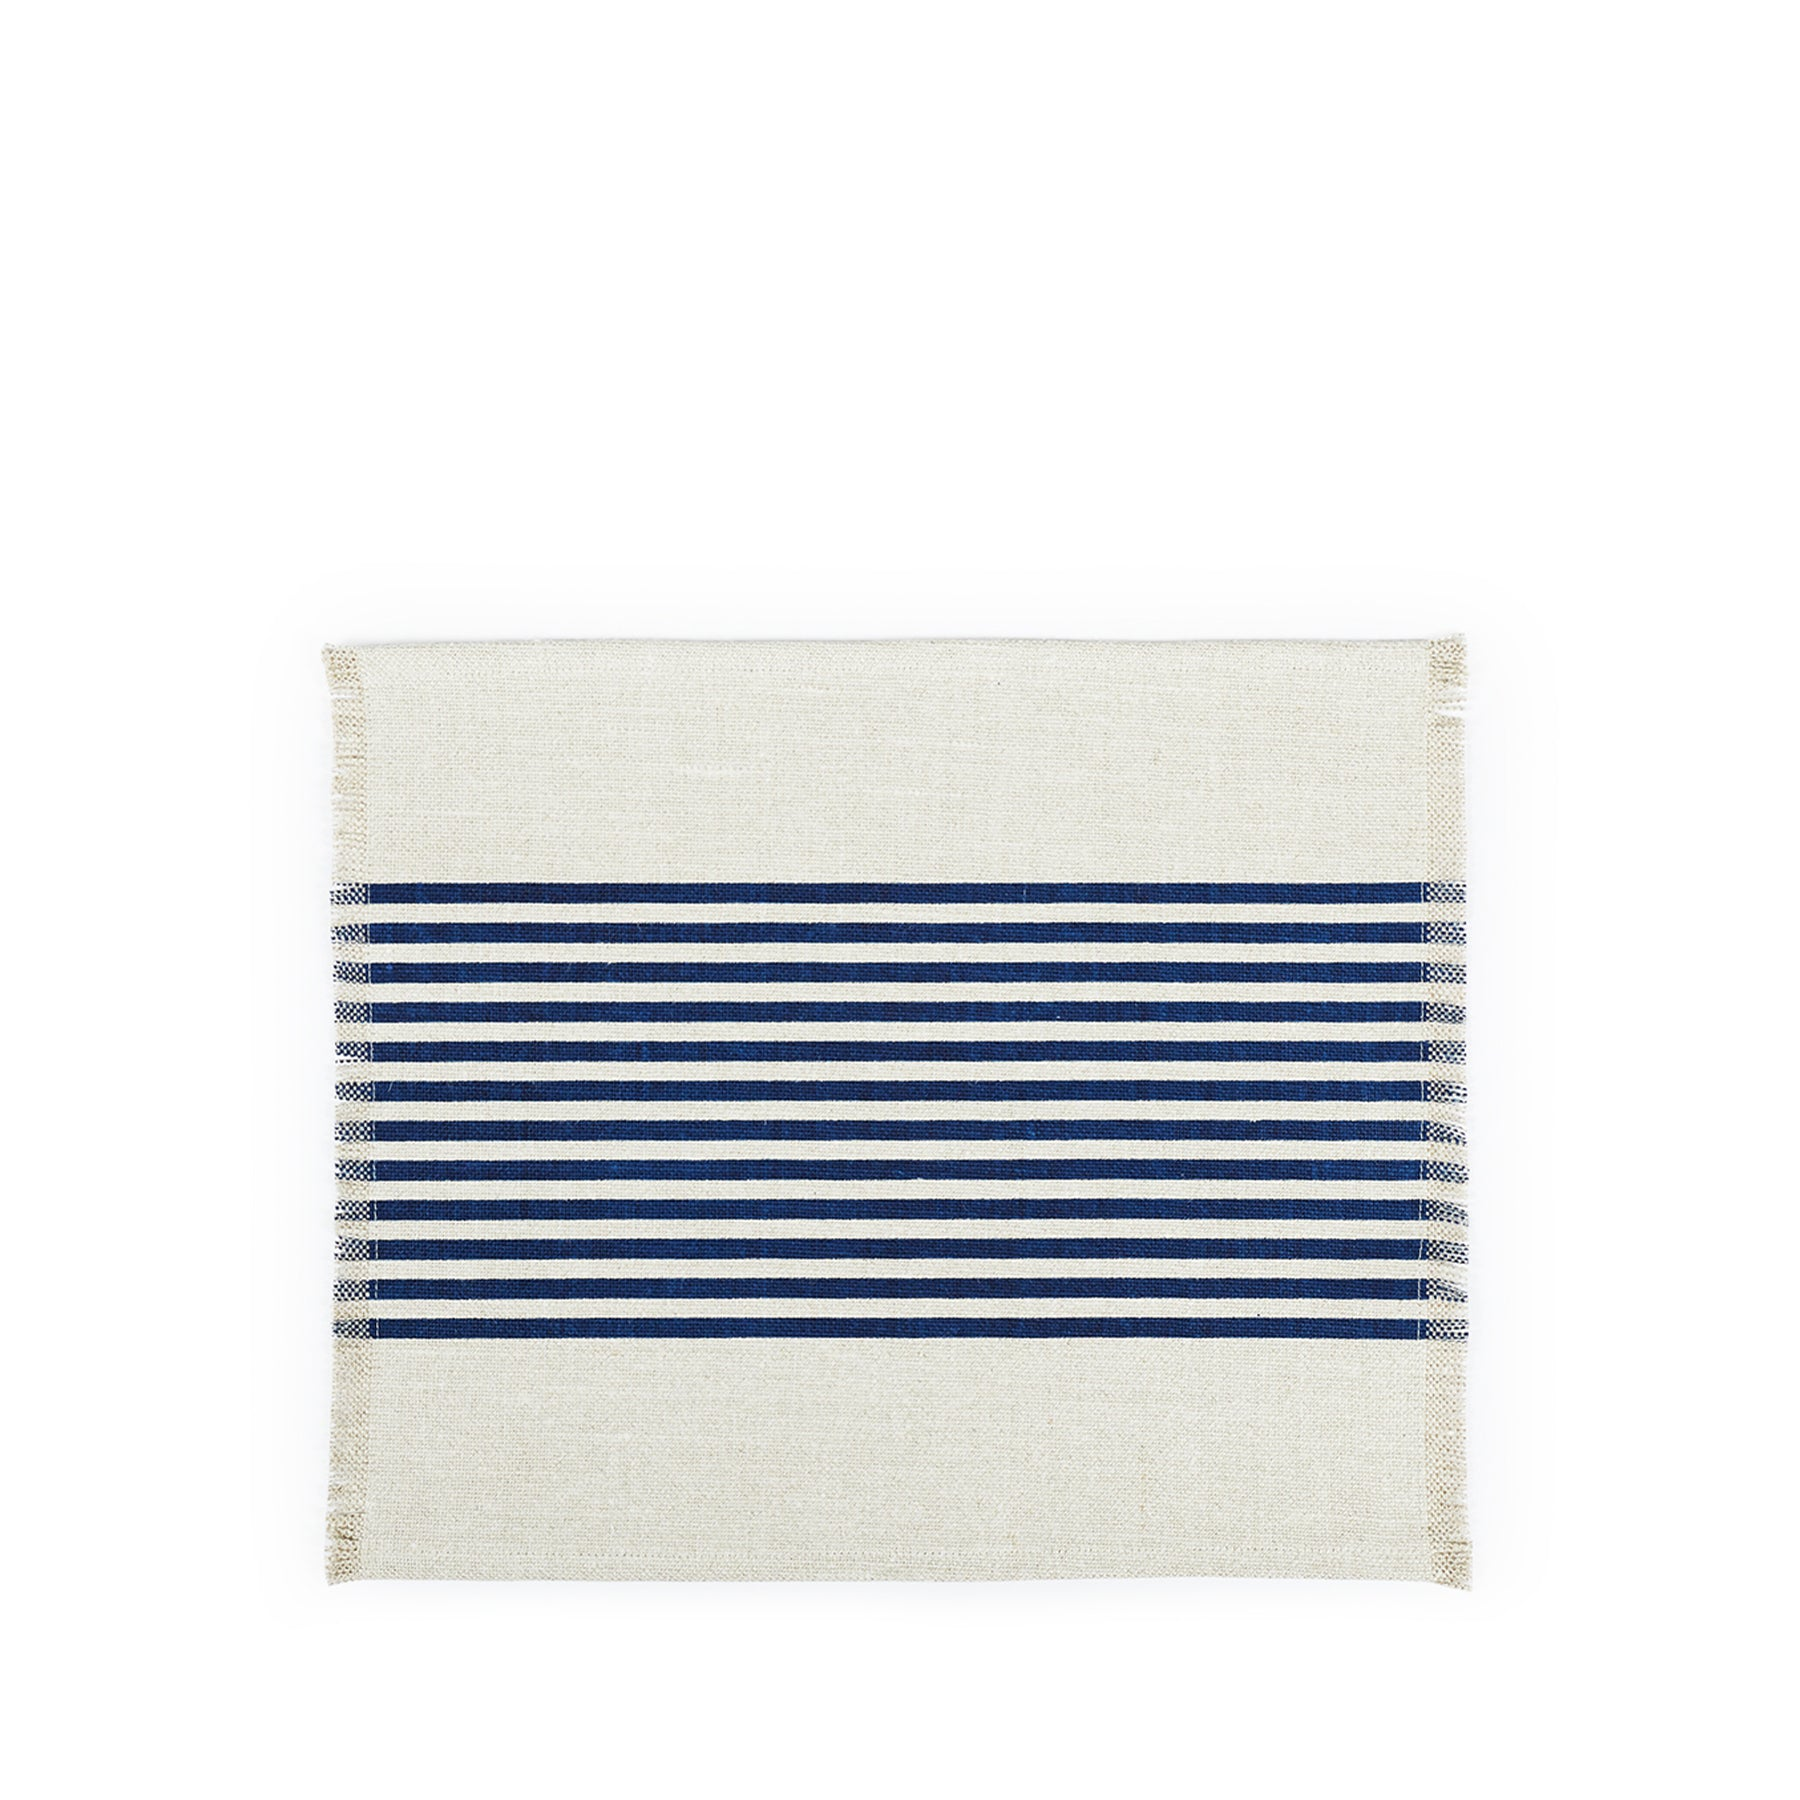 Wilde Linen Center Stripes Placemat in Blue Zoom Image 1